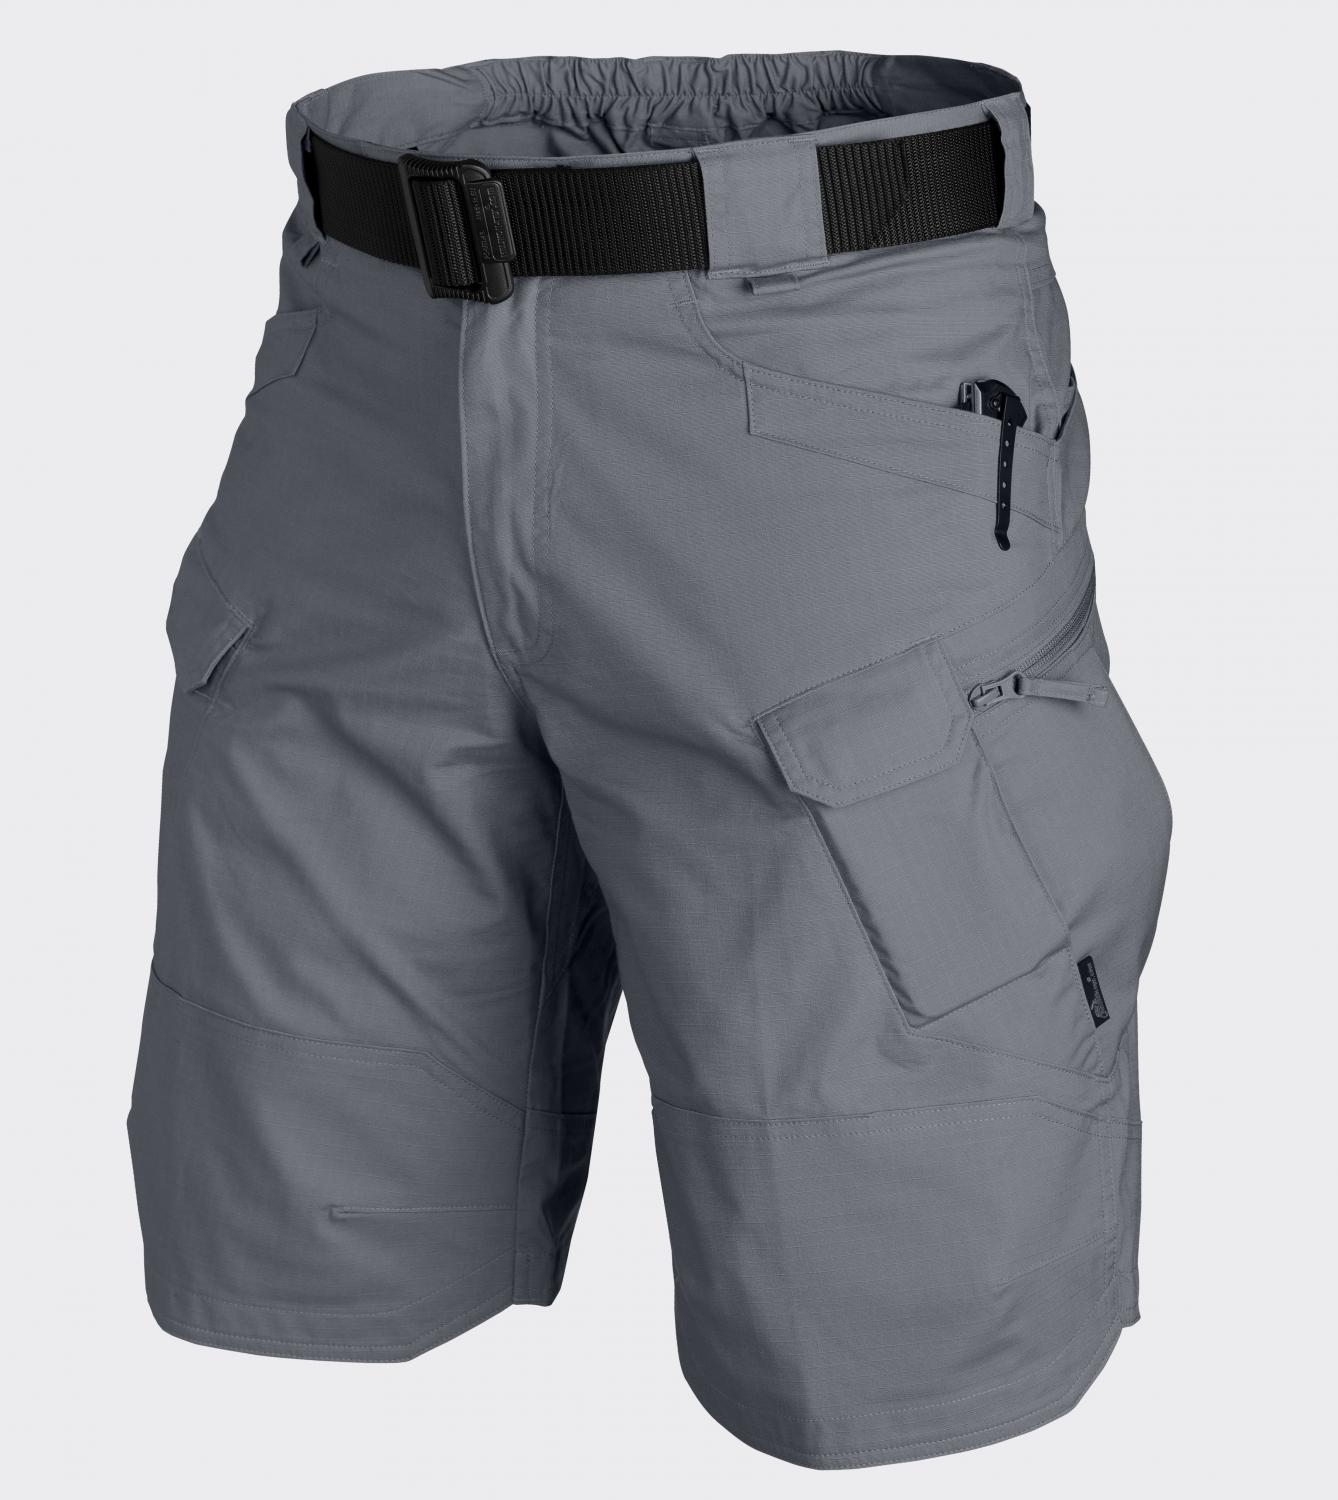 URBAN TACTICAL SHORTS® 11'' - PolyCotton Ripstop Shadow Grey